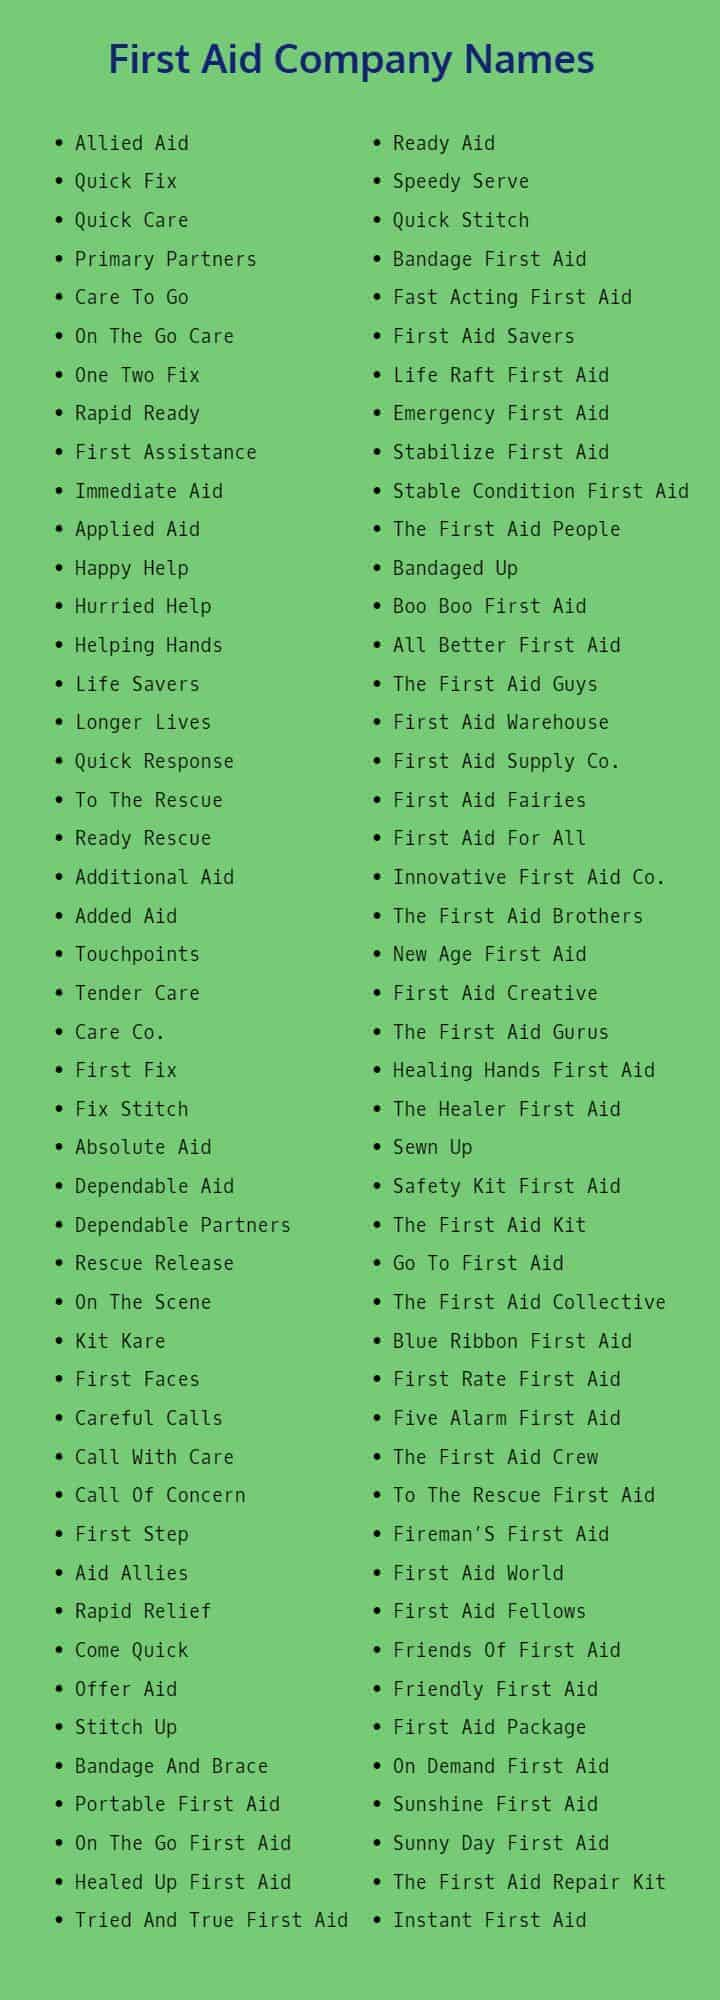 First Aid Company Names